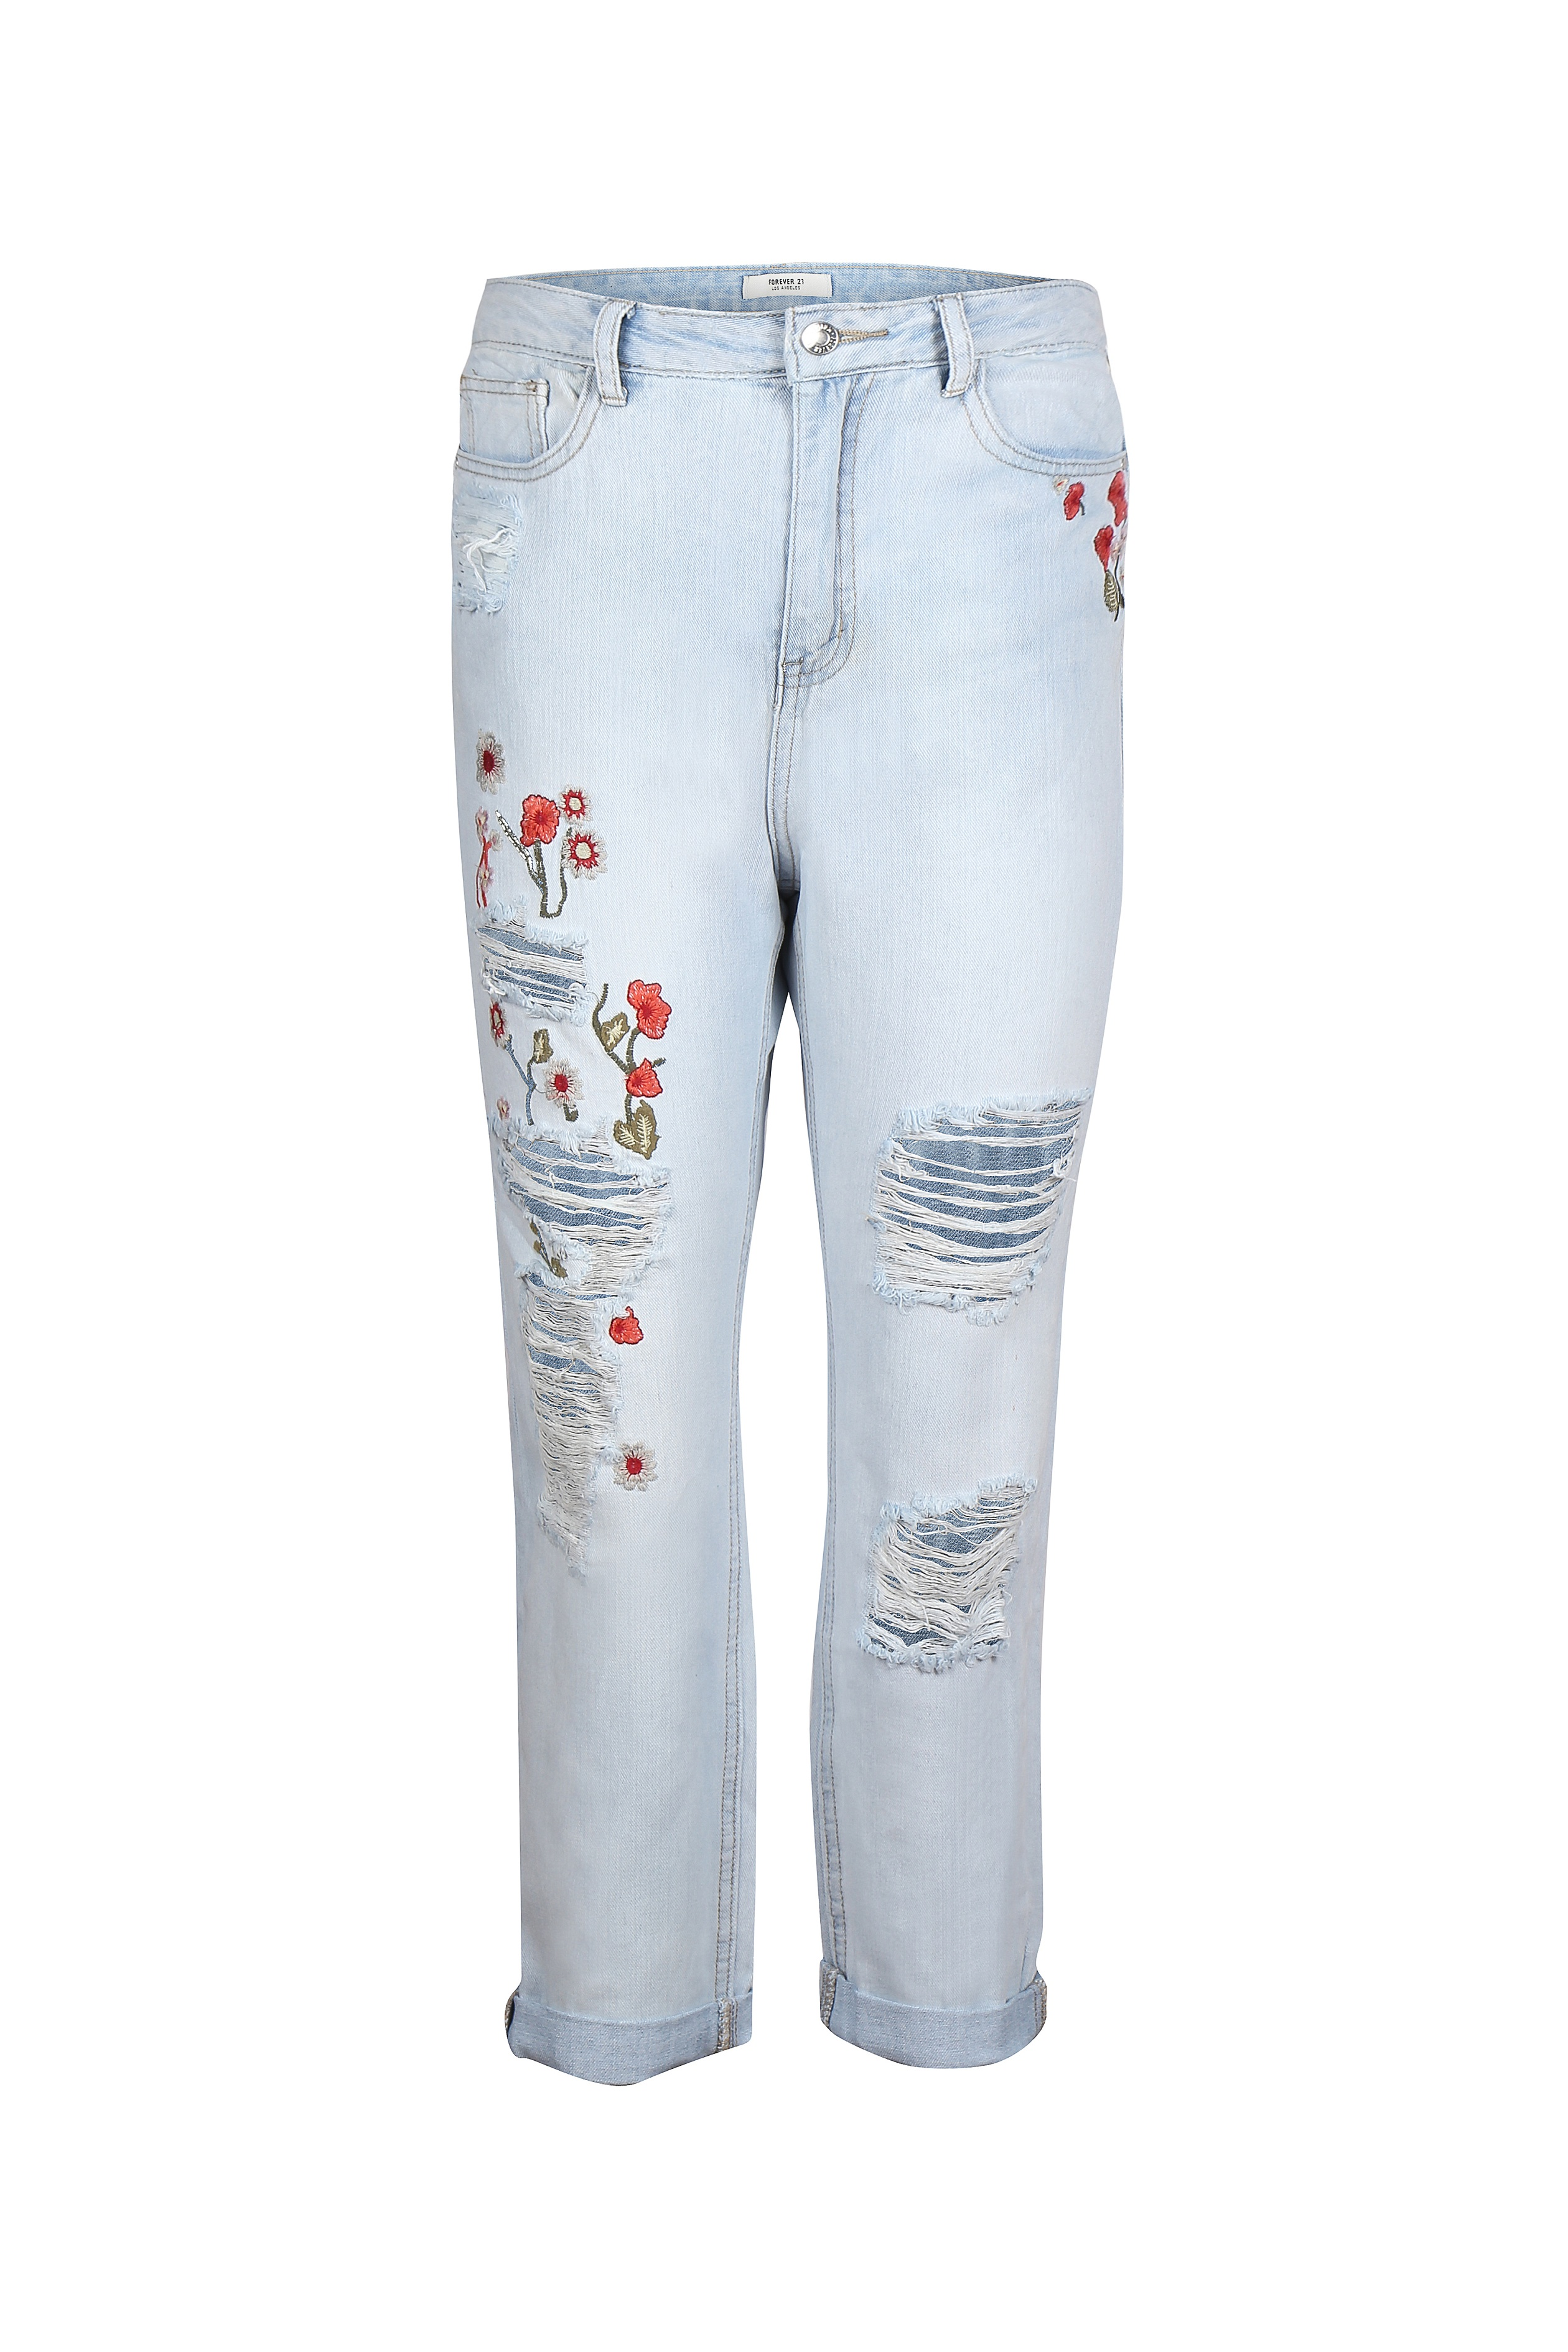 Light blue jeans with floral patchwork detail for women - Rs. 2249